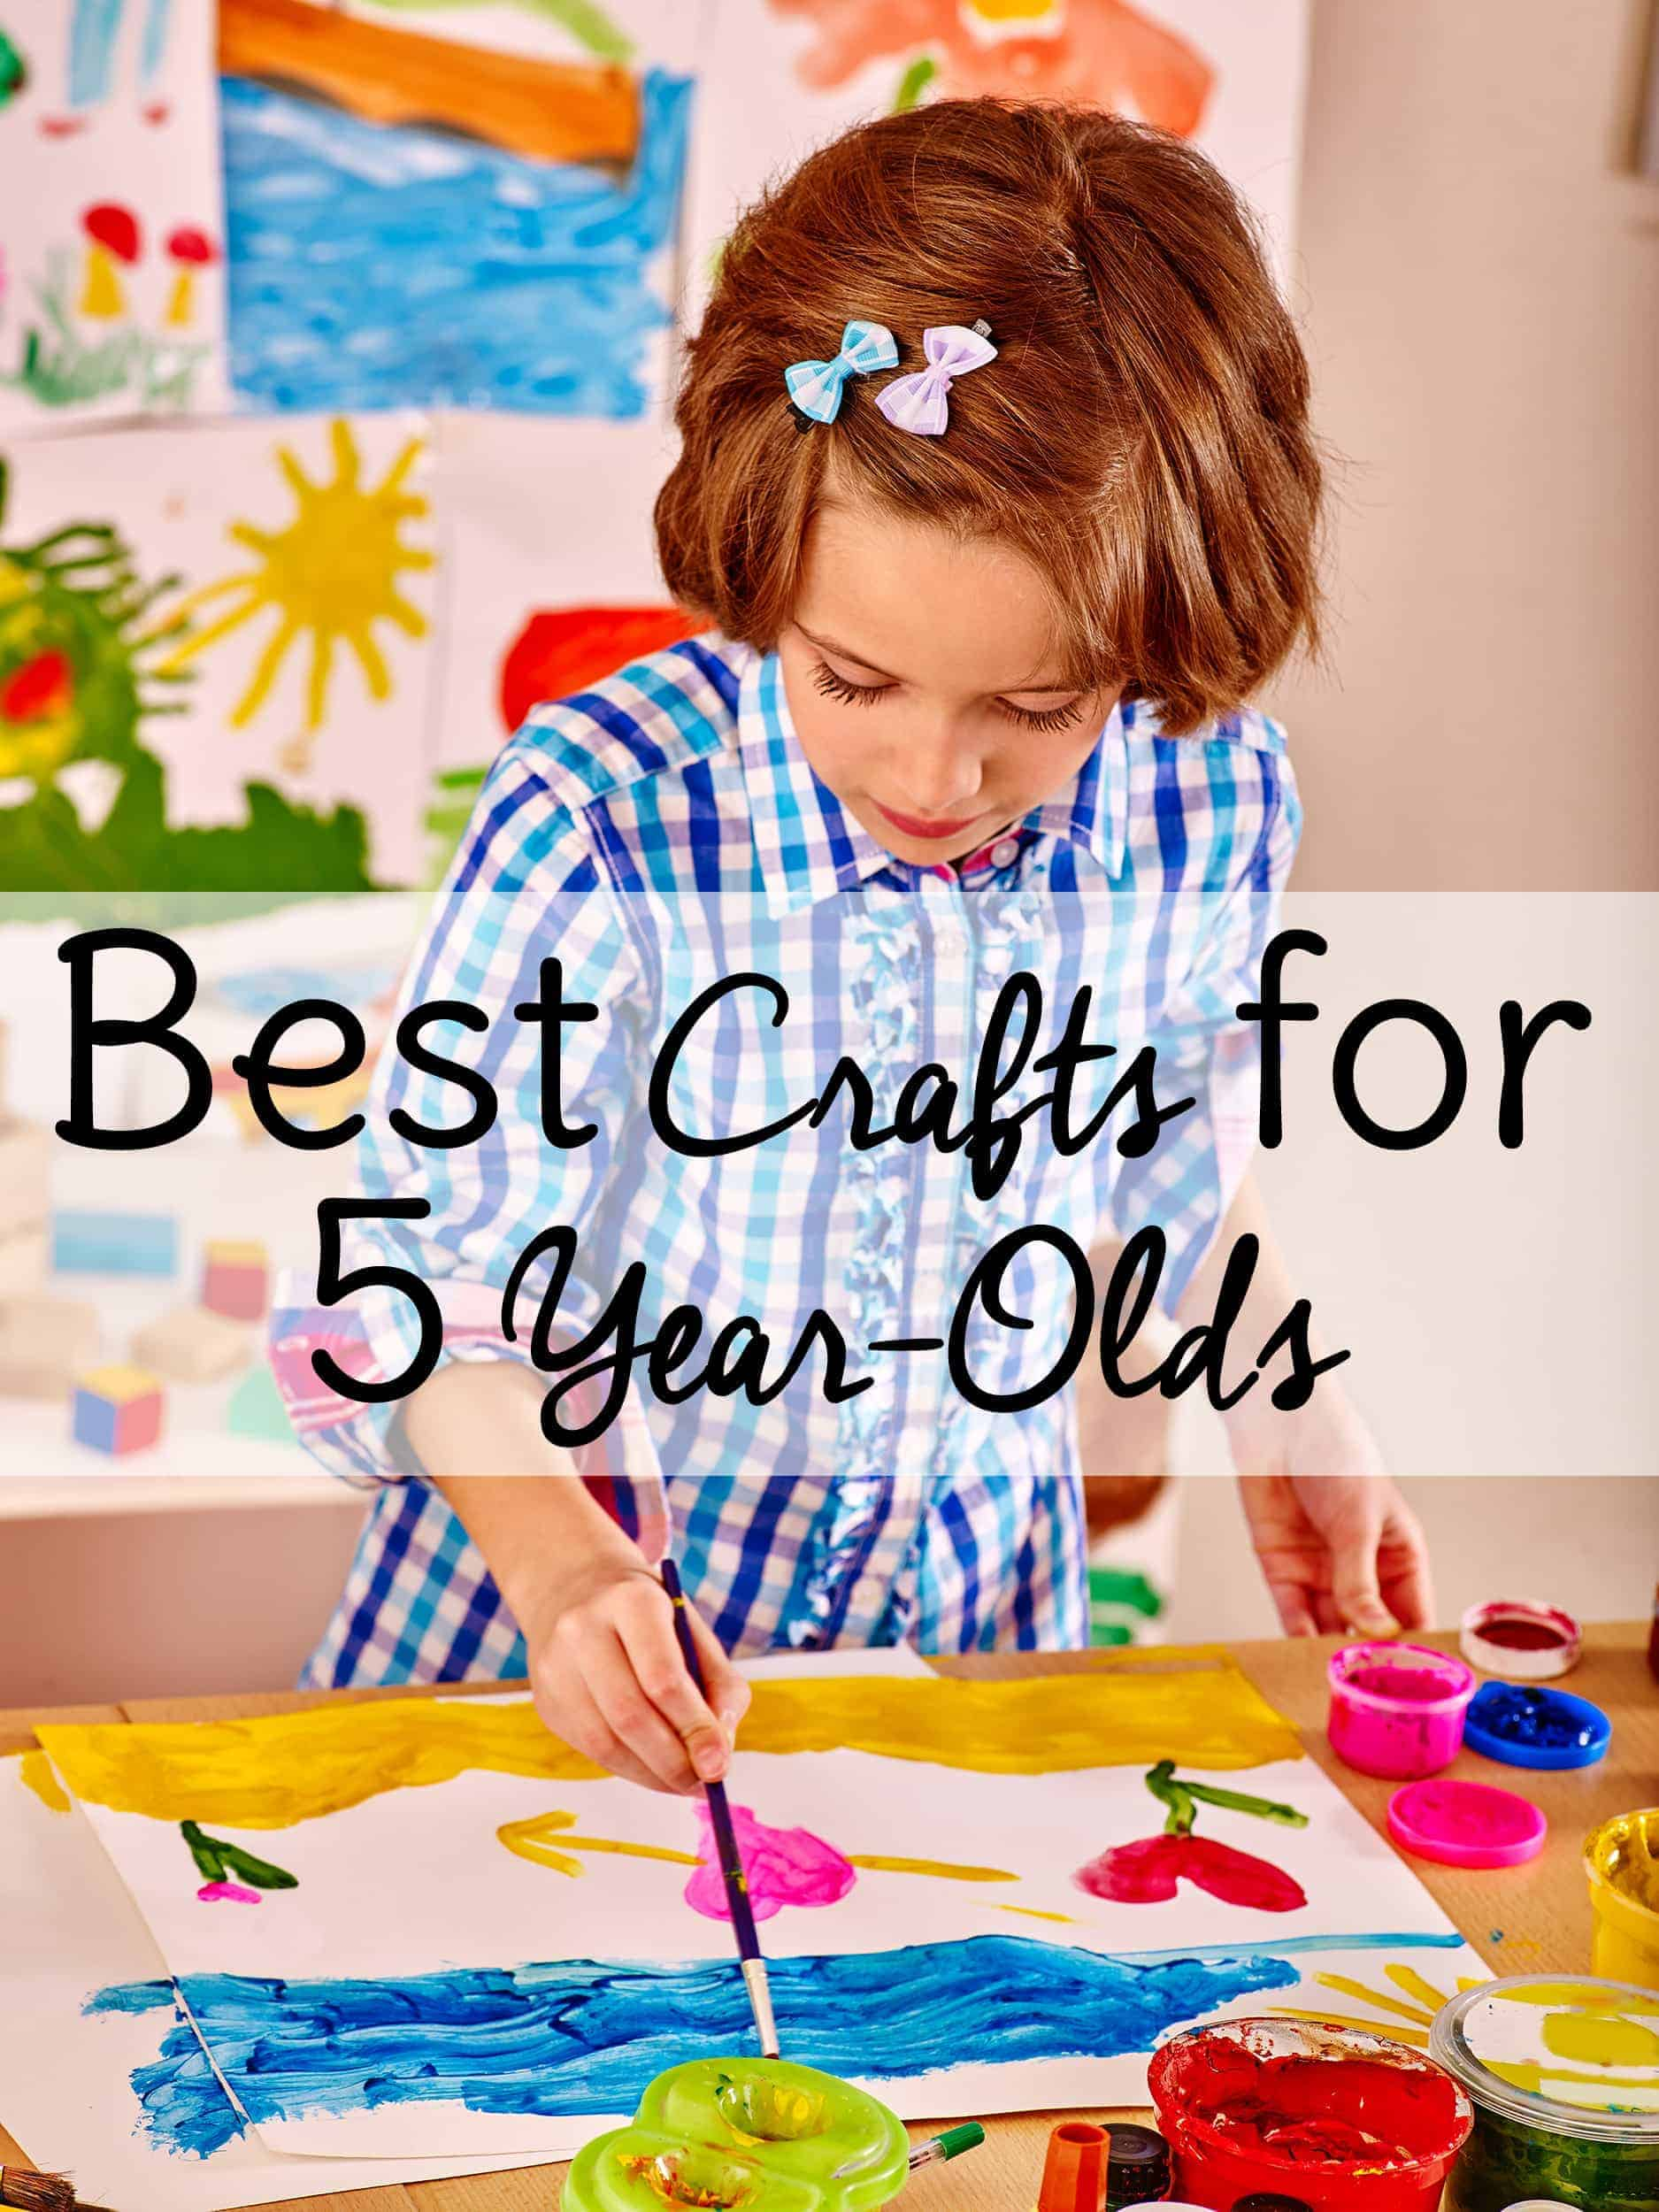 craft ideas for five year olds best crafts for 5 year olds 2017 gift ideas 7567